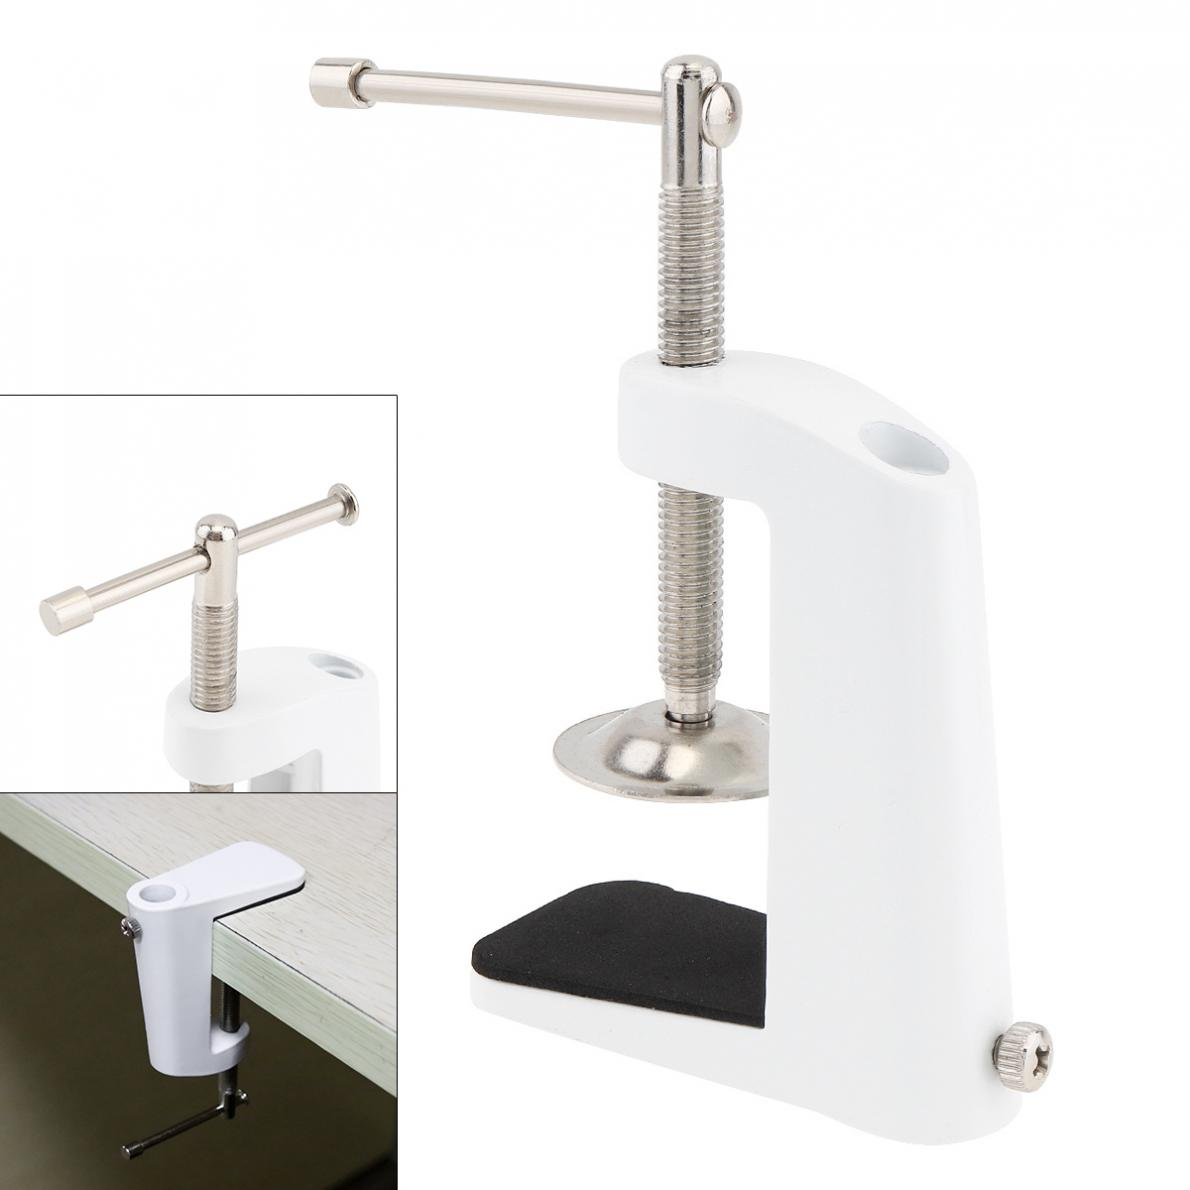 Aluminum Alloy Cantilever Bracket Clamp With 12MM Hole Diameter And Non-slip Mat For Mic Stand Desk Lamp Clip Fittings Base